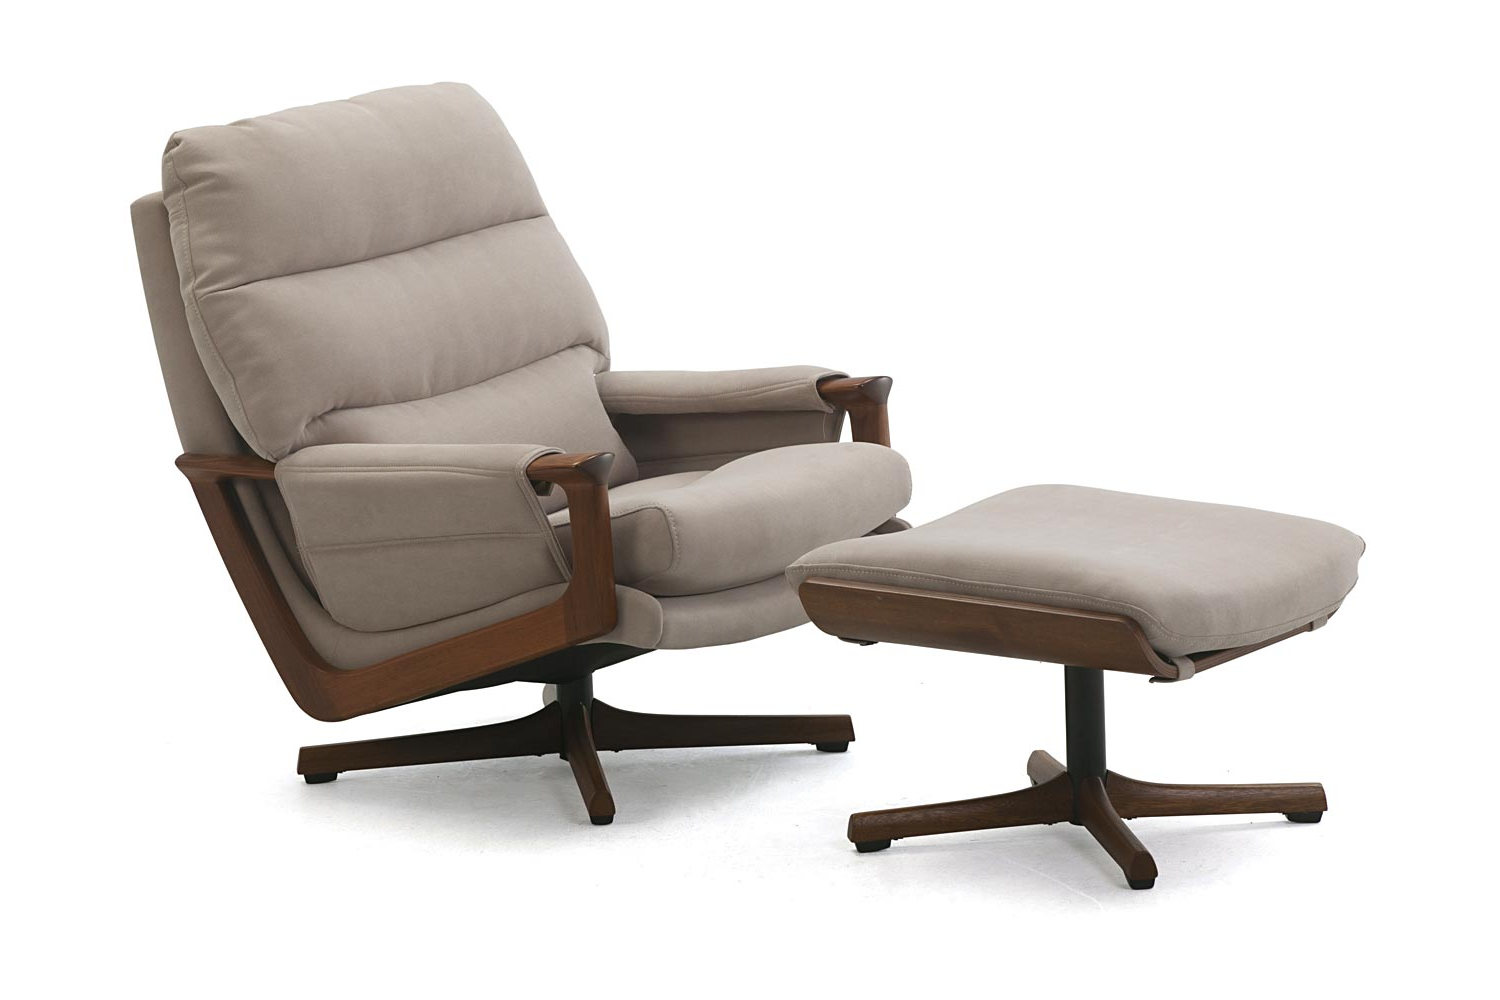 Swivel Chairs Living Room Furniture for Small Spaces